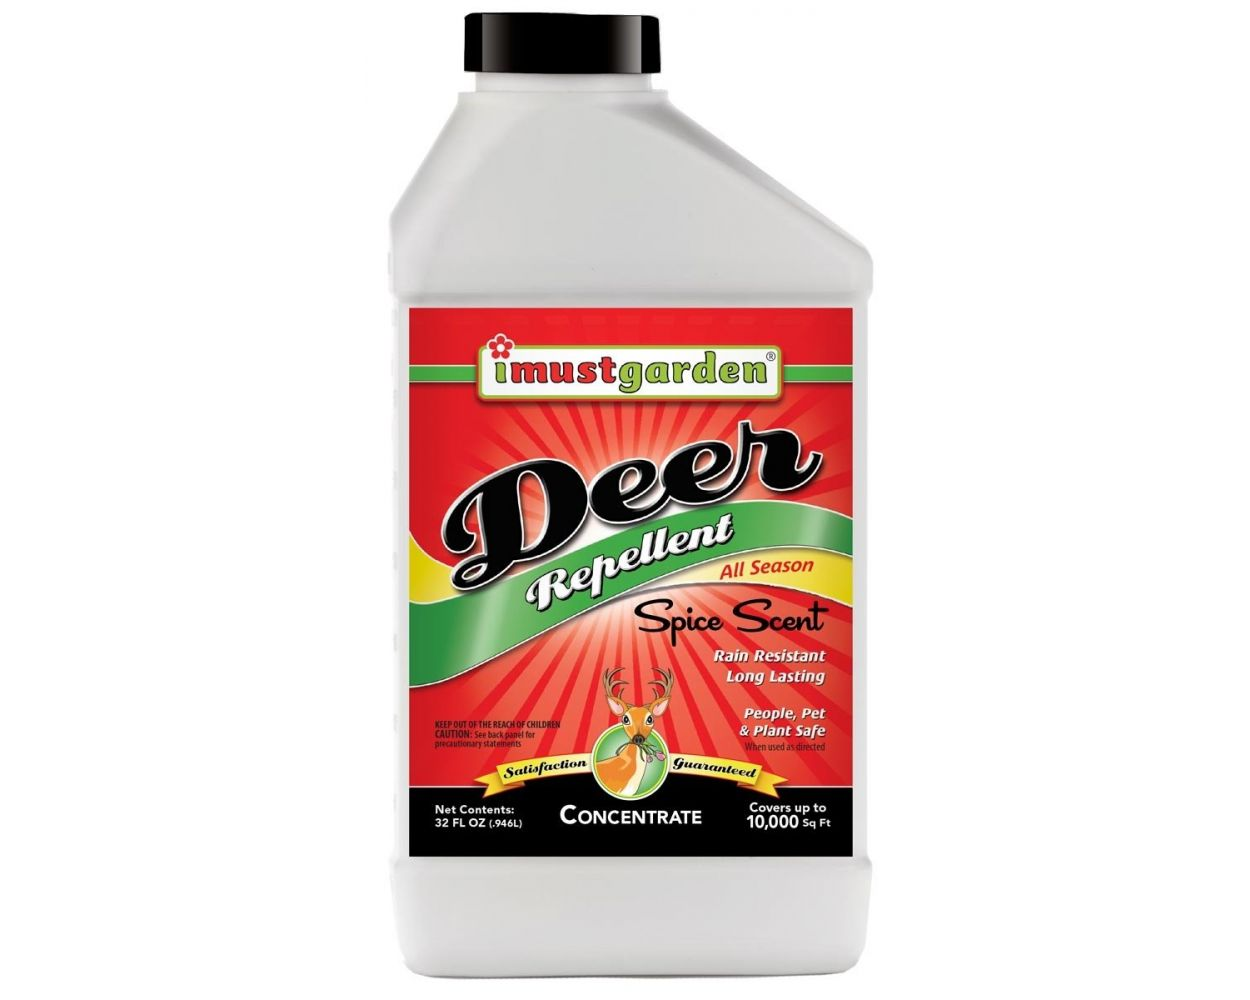 I Must Garden Deer Repellent - Concentrate